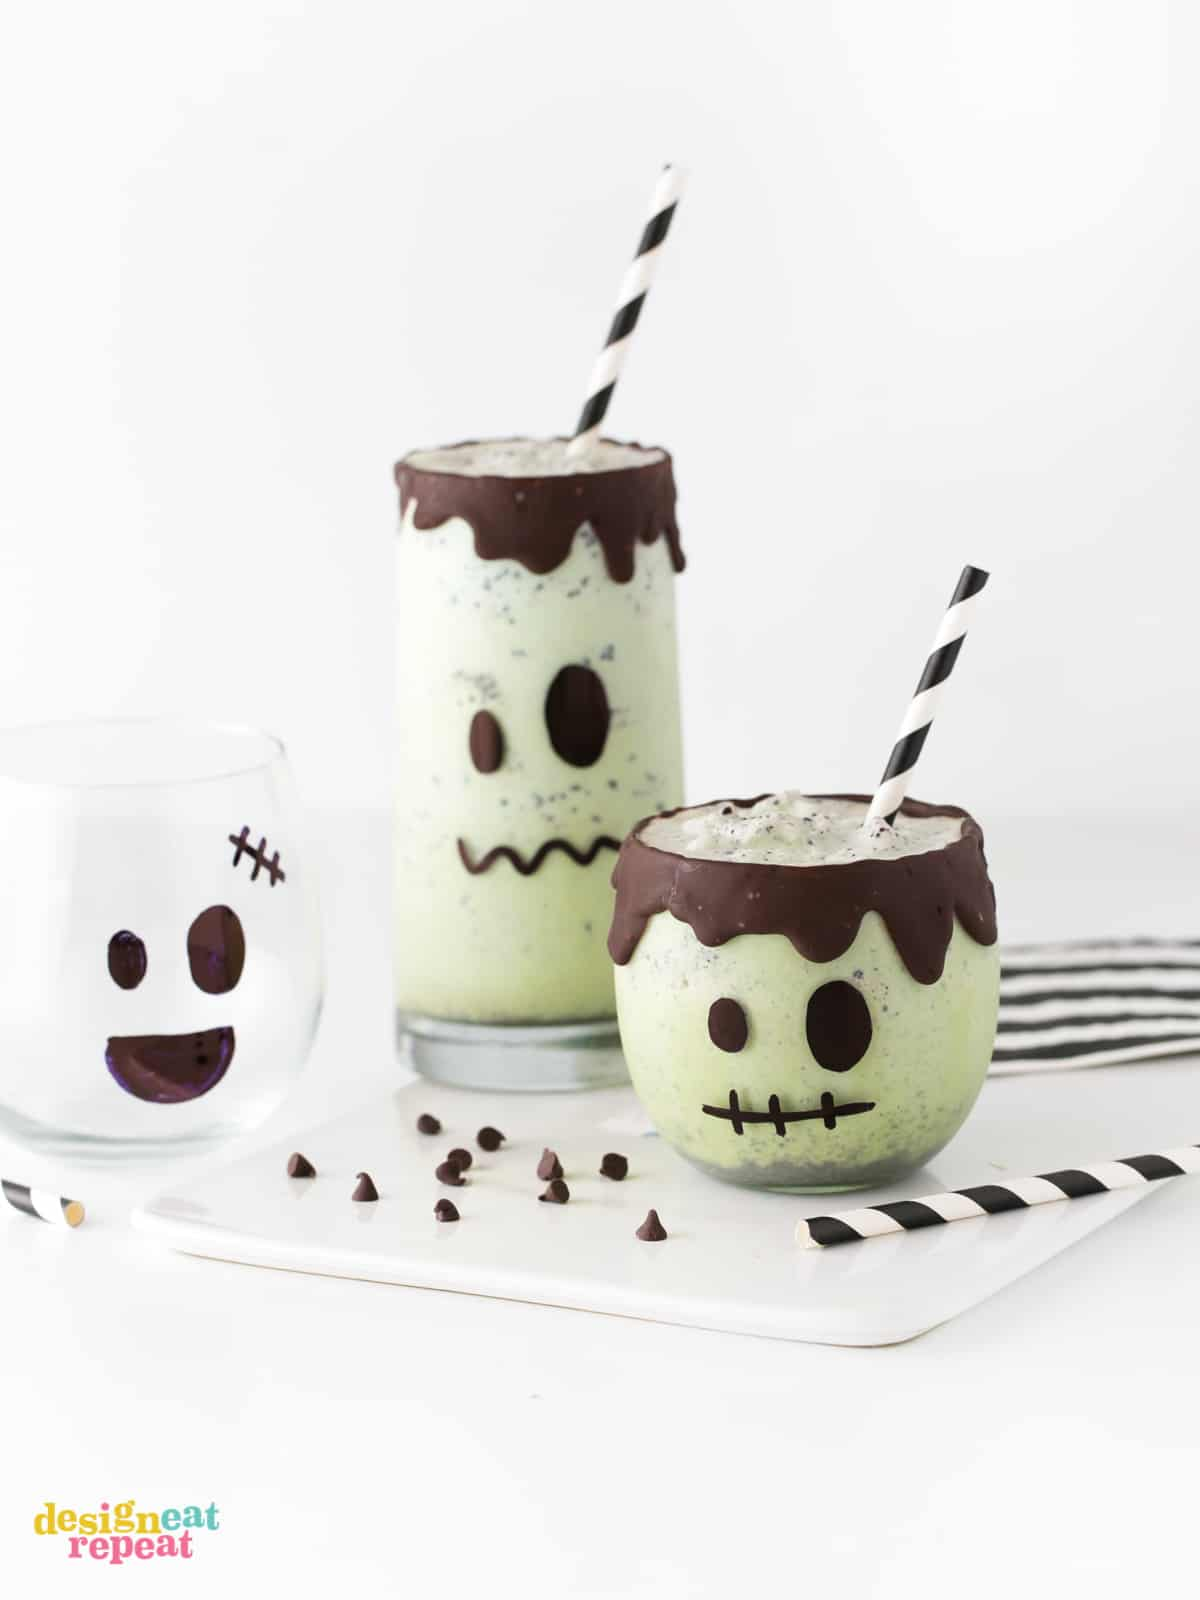 Mint chip green Halloween milkshakes decorated like Frankenstein with chocolate drip rim and striped black paper straws